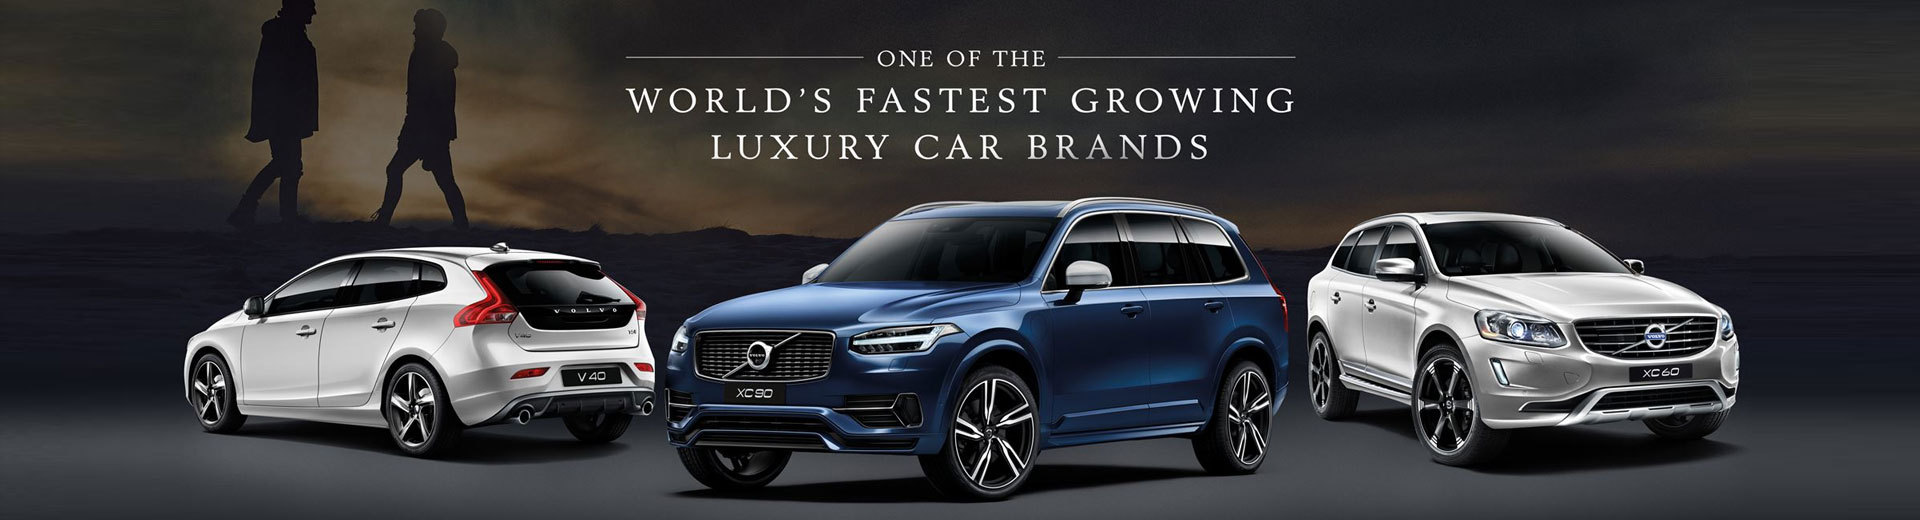 Vovlo - One of the World's Fastest Growing Luxury Car Brands - Find out why this